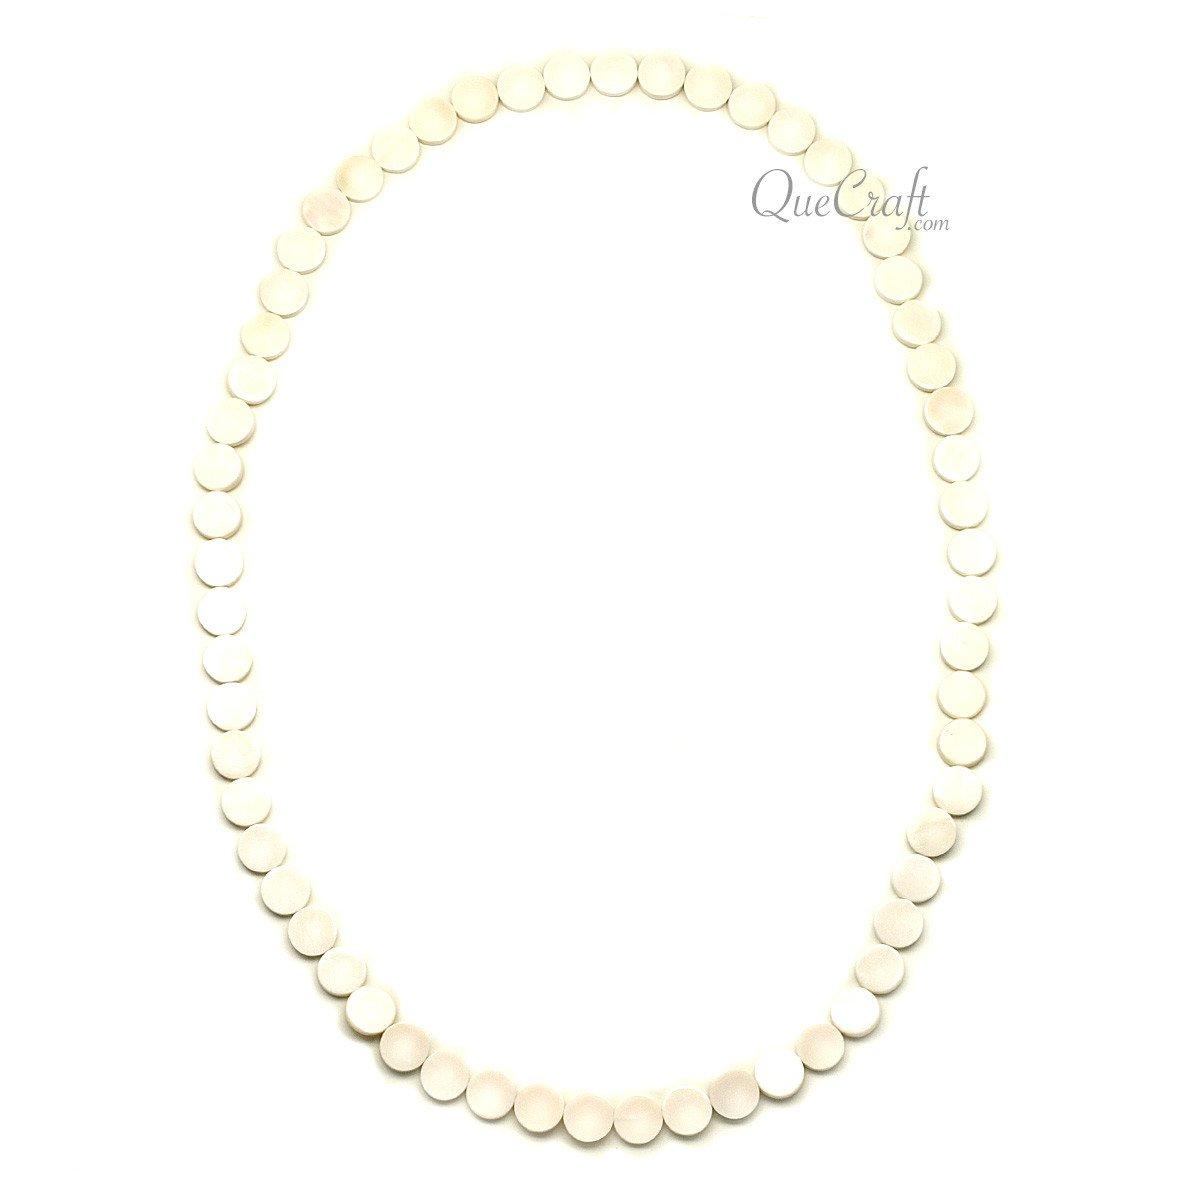 Bone Chain Necklace #12218 - HORN.JEWELRY by QueCraft